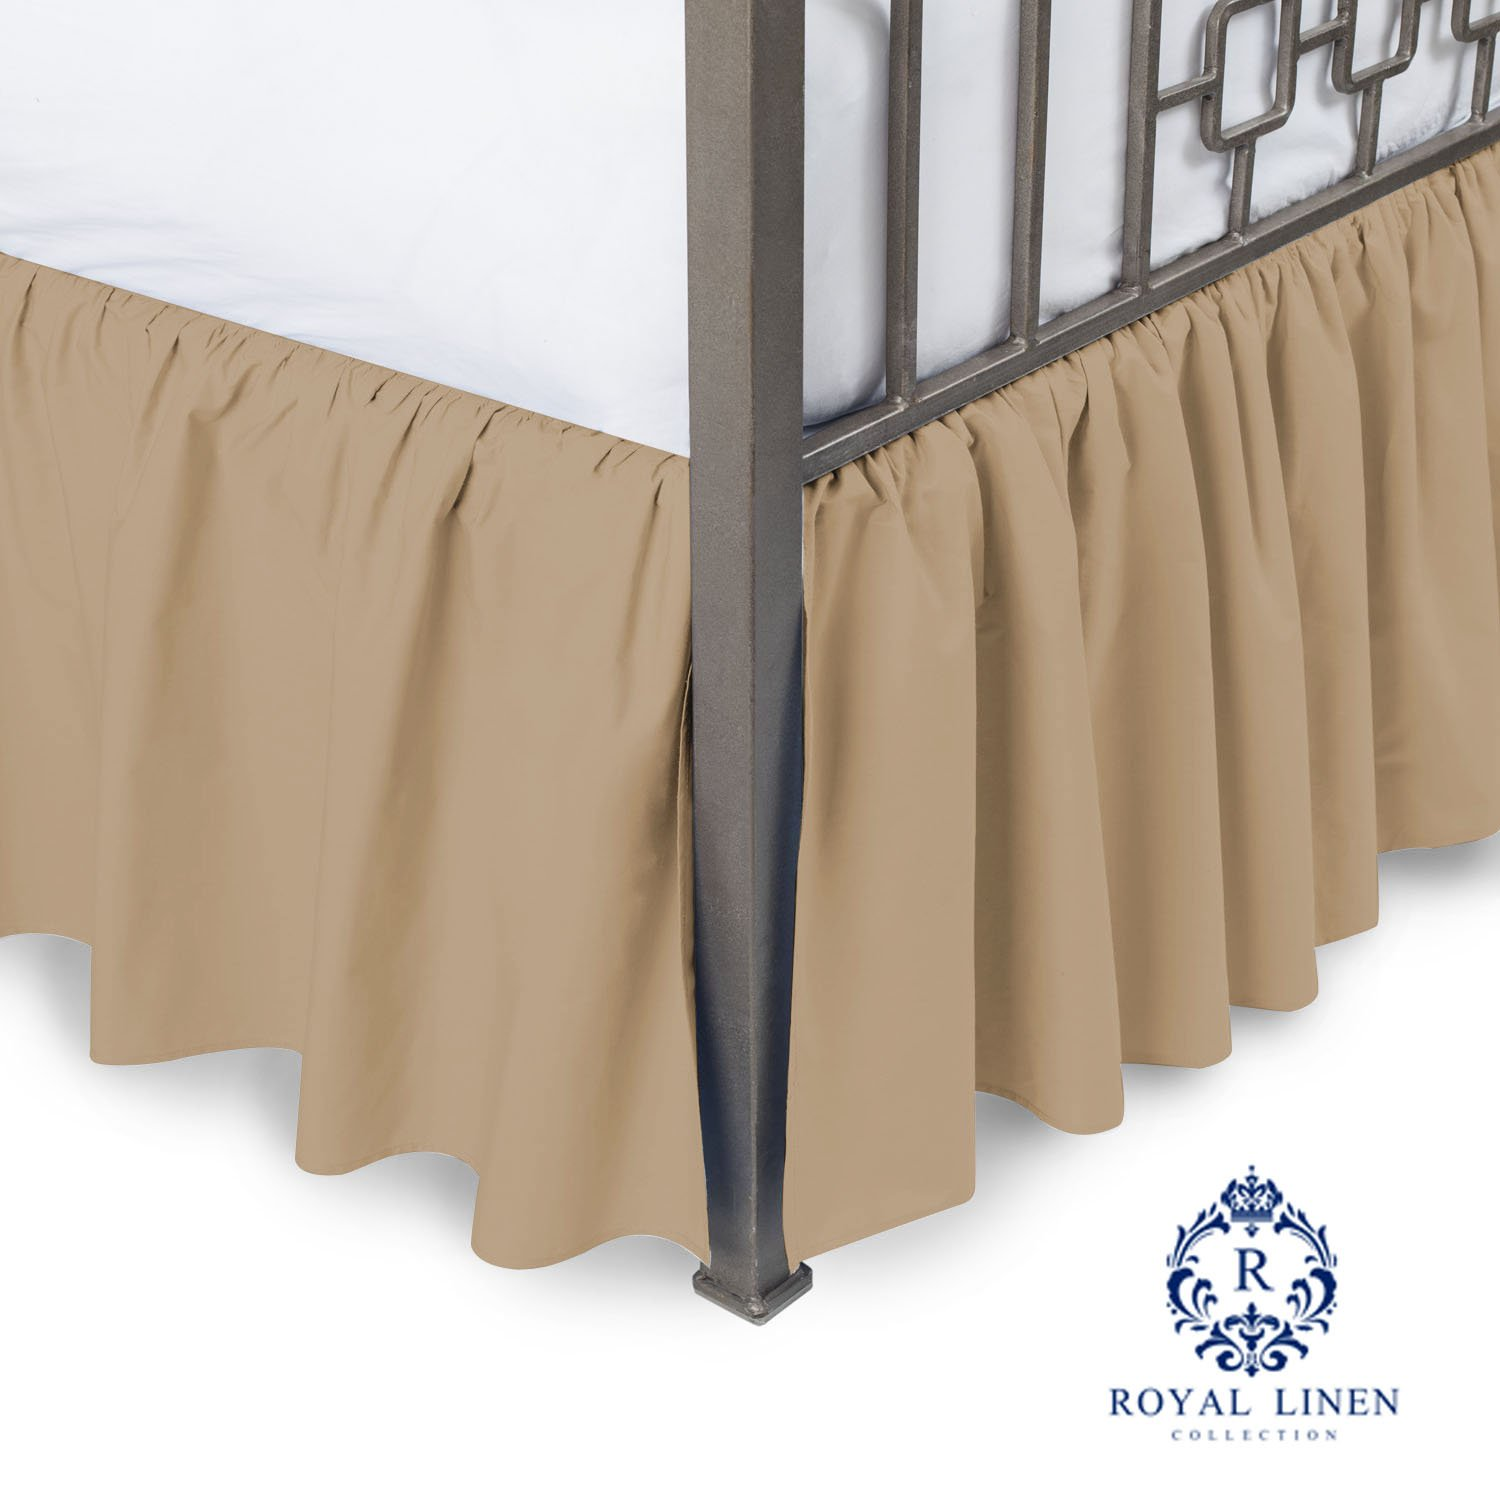 Royal Linen Collection Hotel Quality 800TC Pure Cotton Dust Ruffle Bed Skirt 16'' Drop length 100% Natural Cotton California King Size Taupe Solid